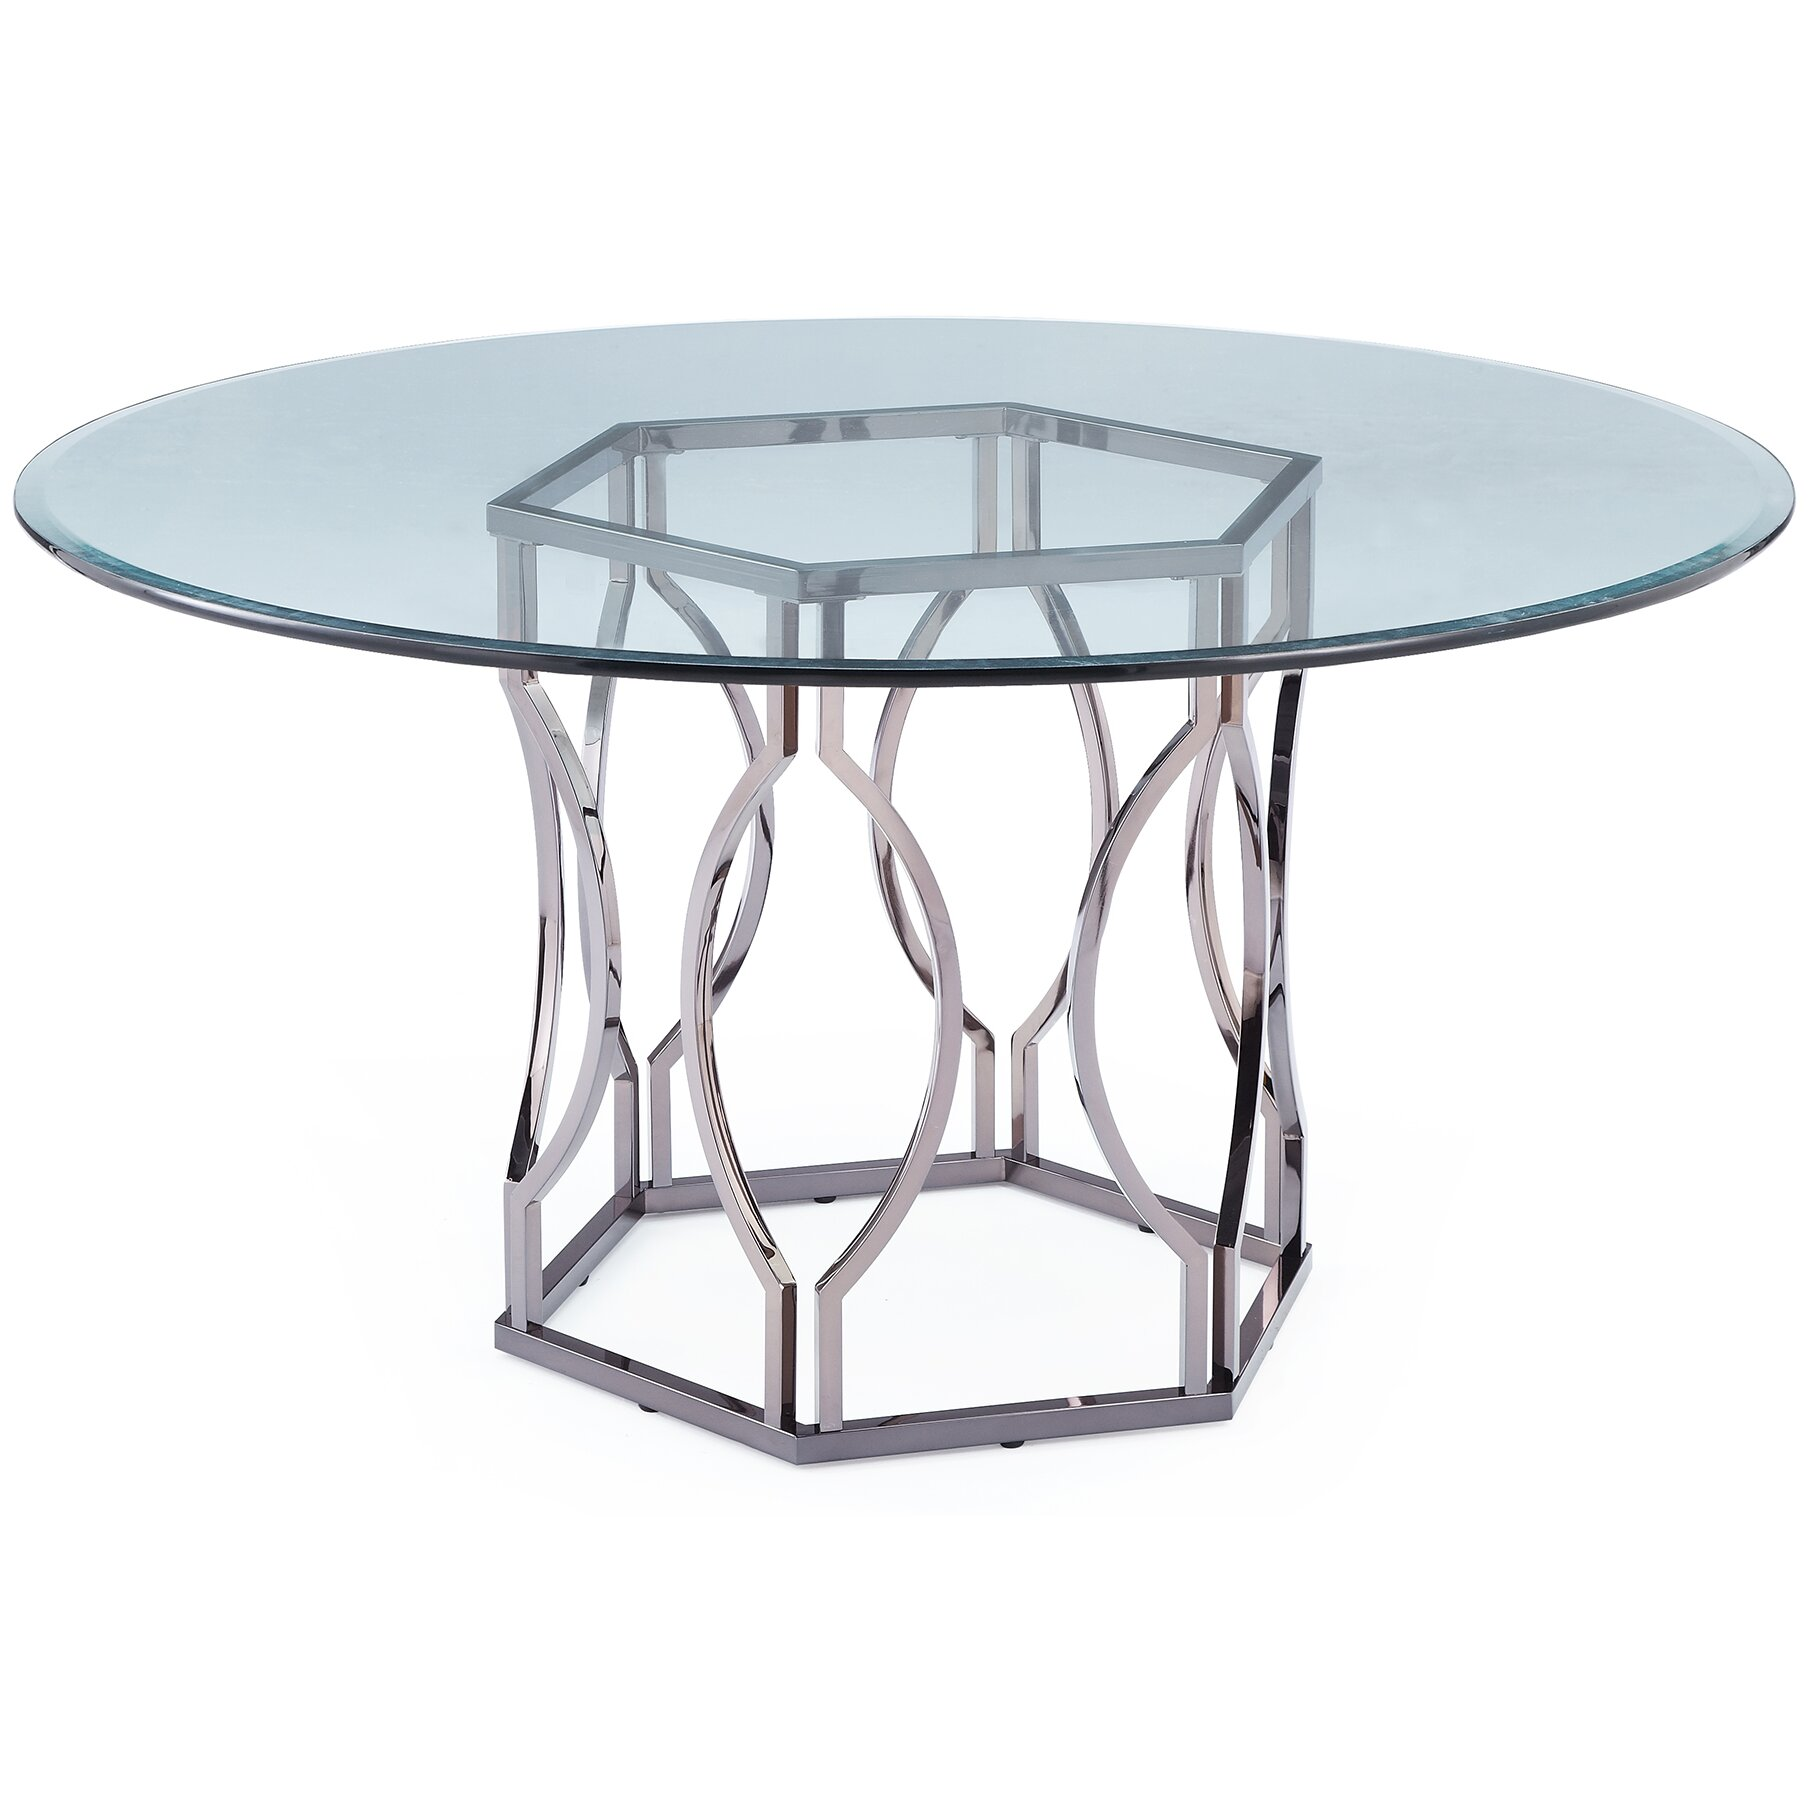 mercer41 viggo round glass dining table reviews wayfair ForGlass Dining Table